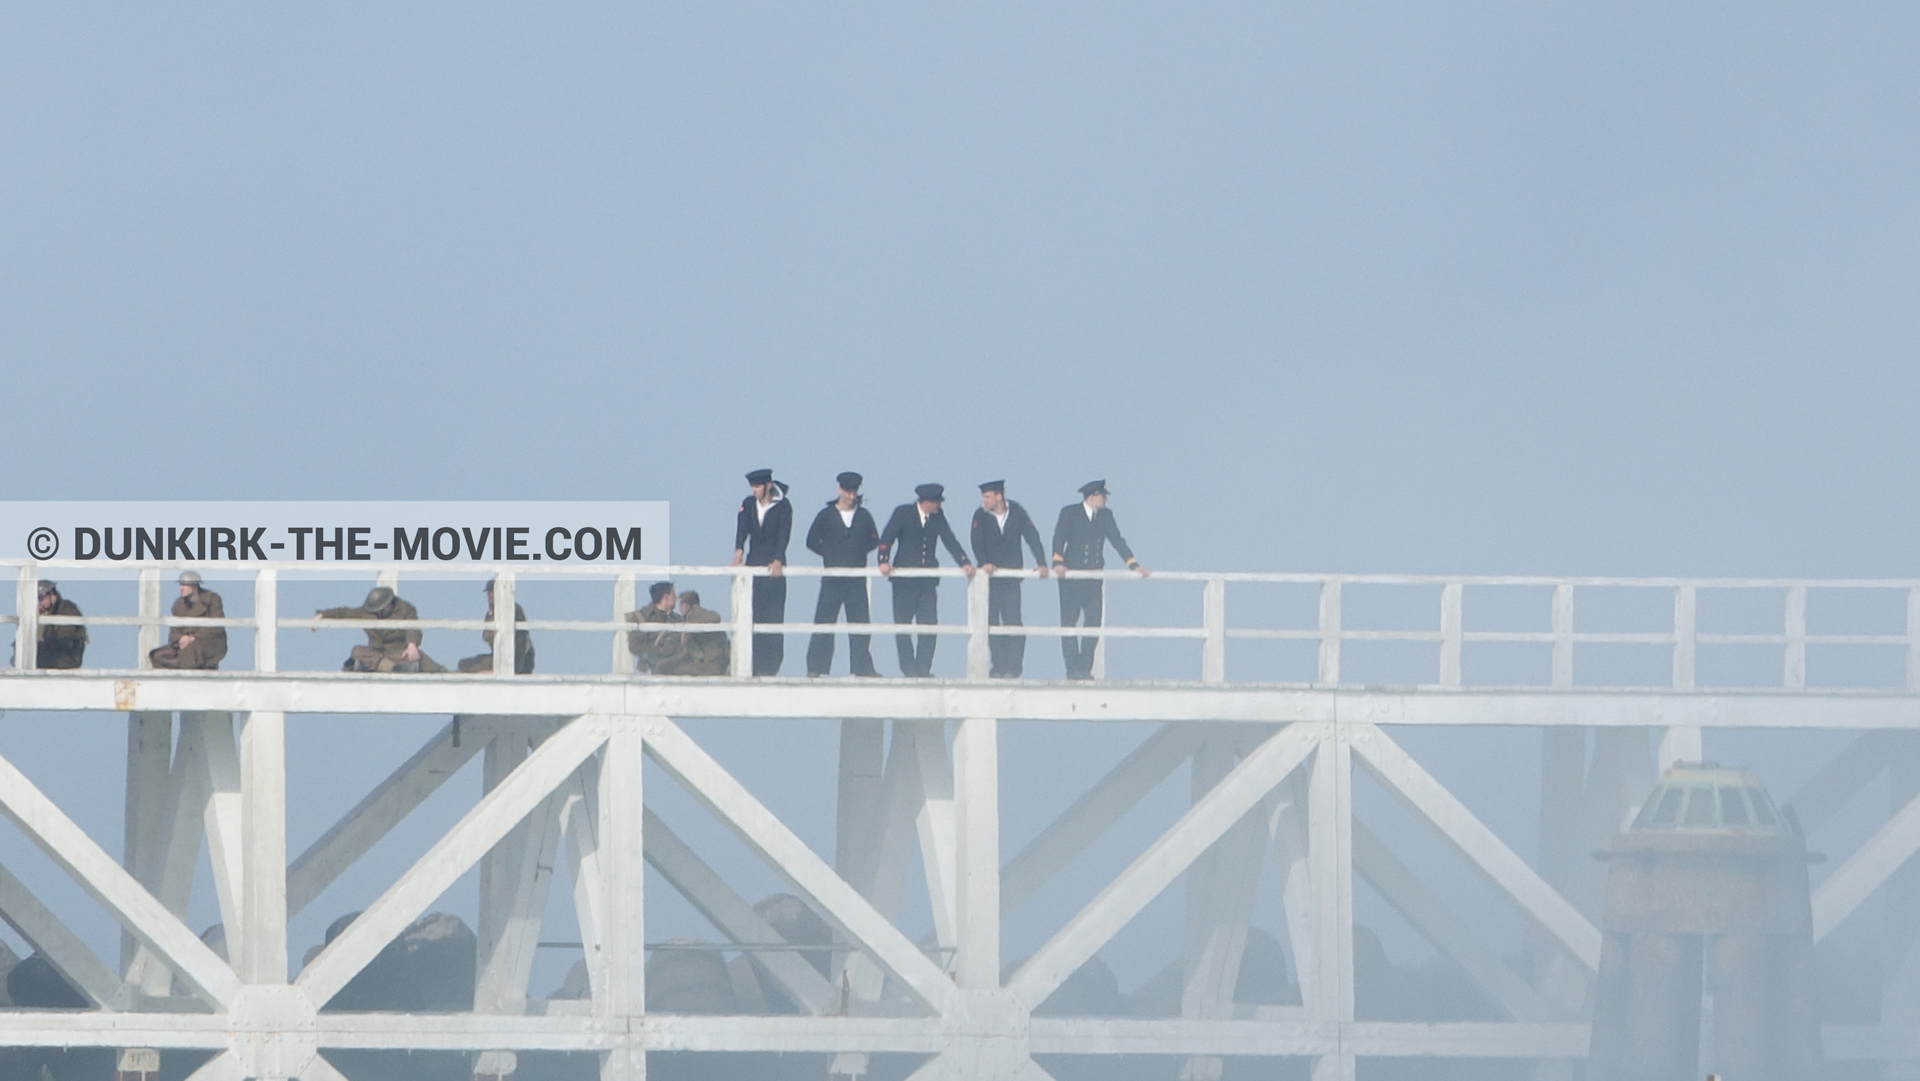 Picture with blue sky, supernumeraries, white smoke, EST pier,  from behind the scene of the Dunkirk movie by Nolan